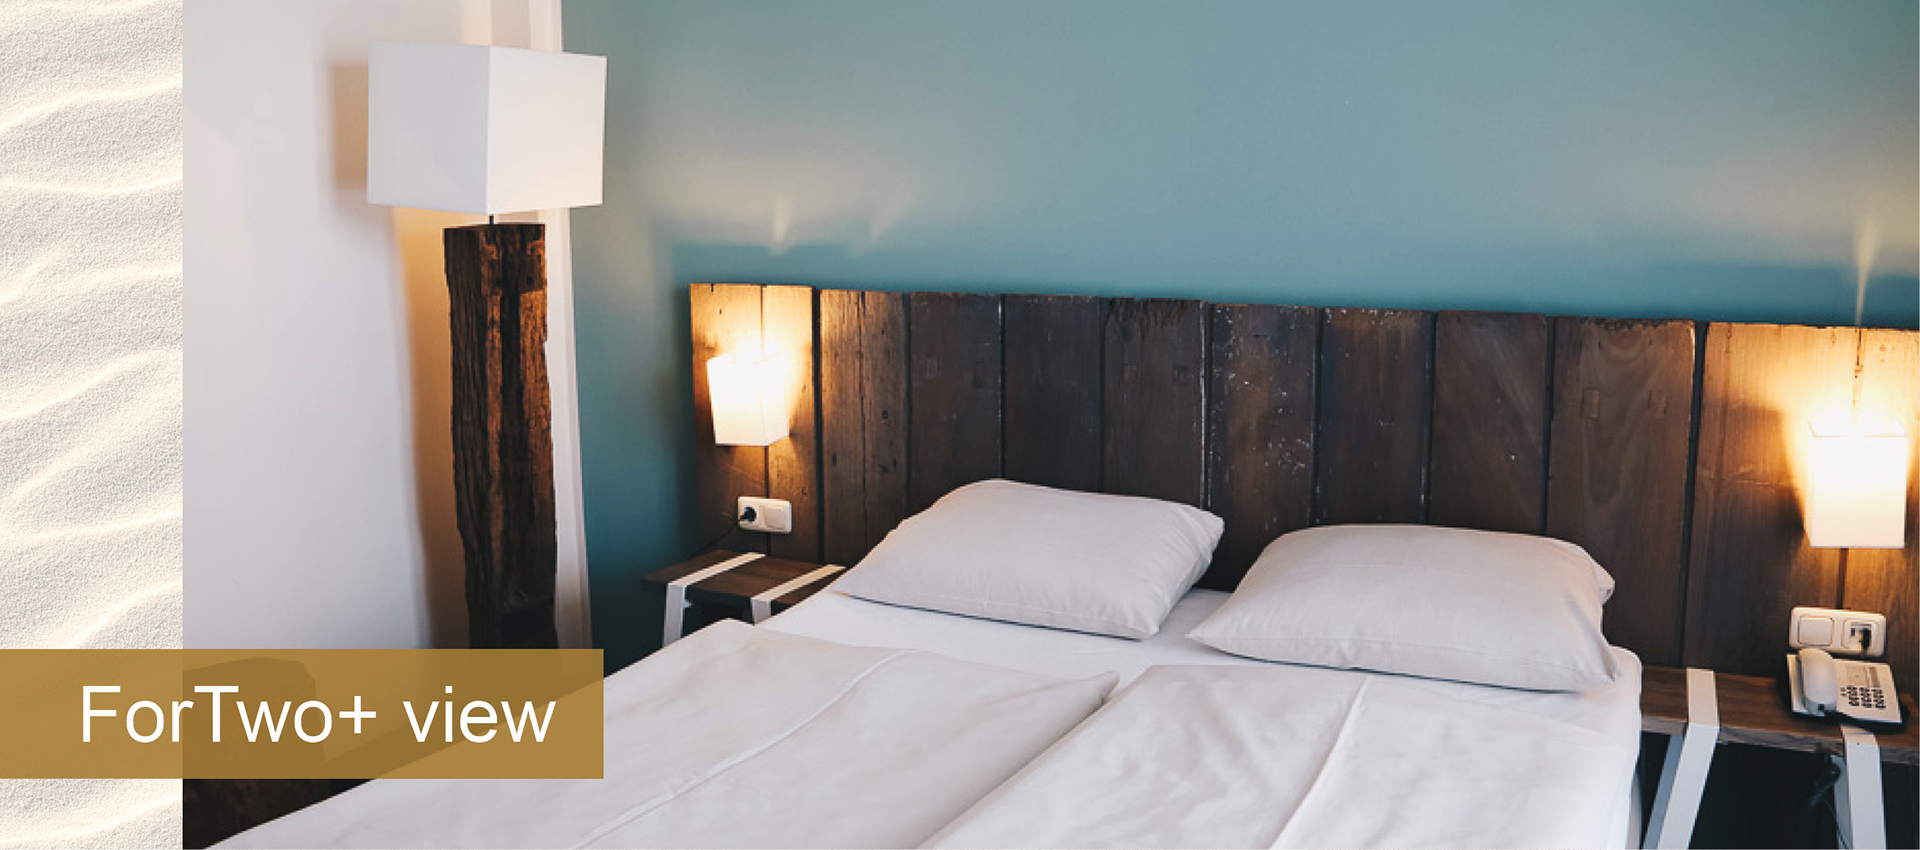 Hotel SAND Timmendorfer Strand in Schleswig Holstein Zimmer rooms for two plus view